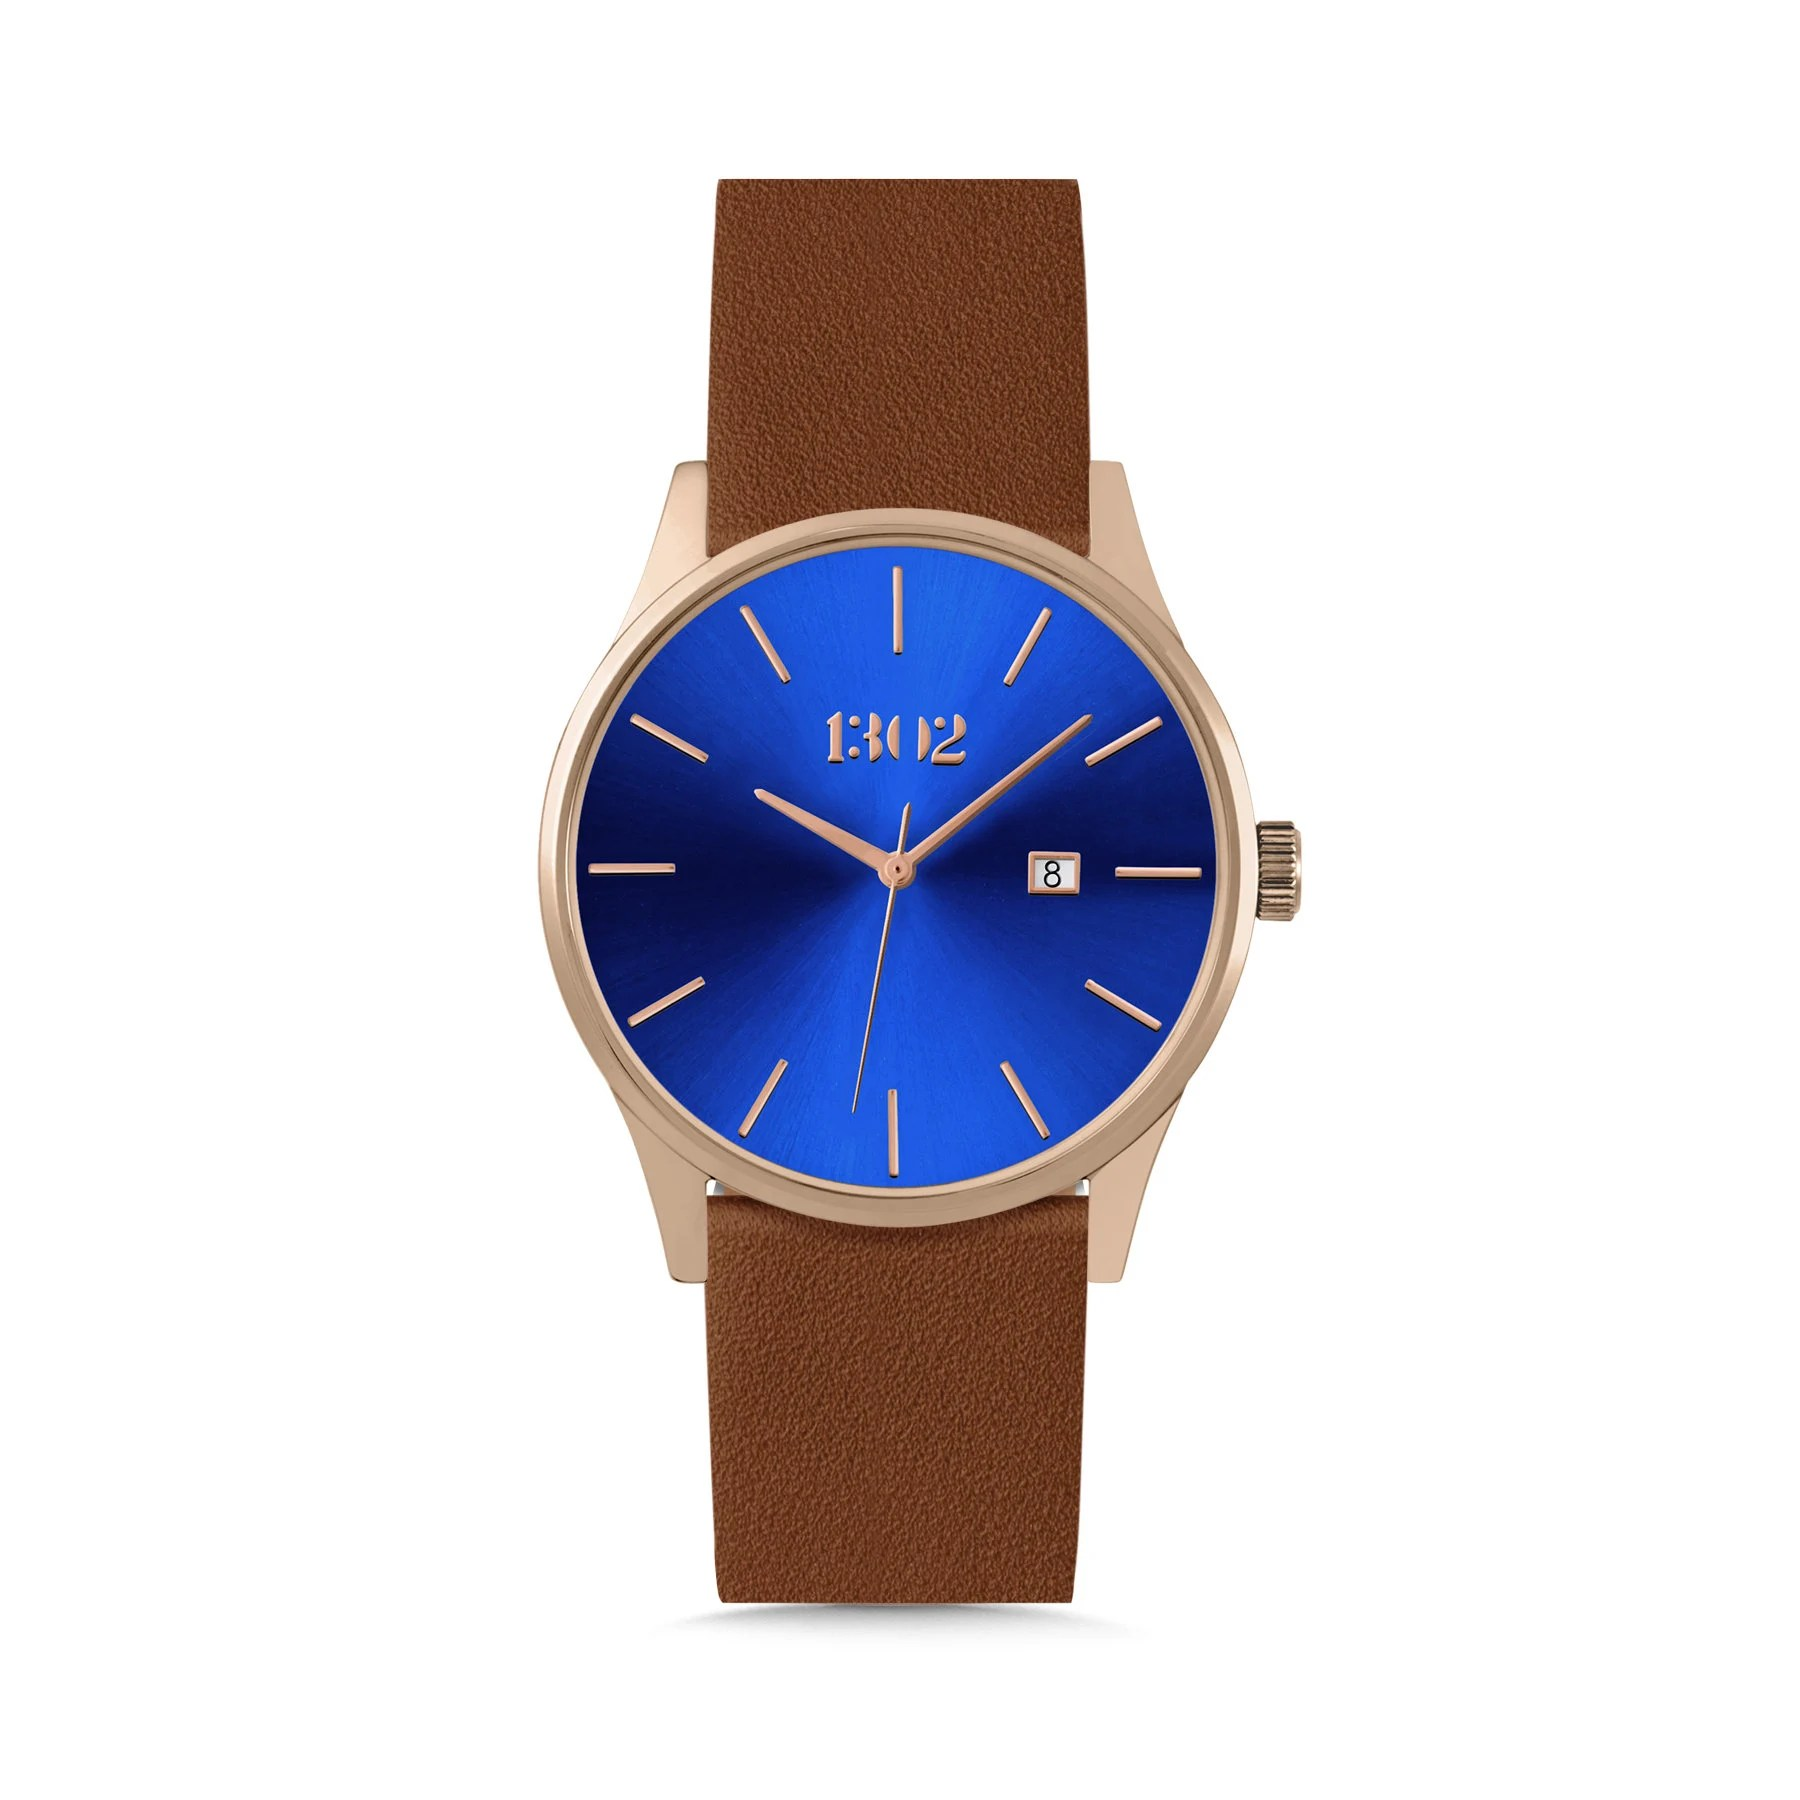 Leather Strap Rose Gold Watch Mens Watches Rose Gold Watch 42mm Case Black Leather Strap Watches For Men Minimalist Watch Leather Watch Men Mens Wrist Watches